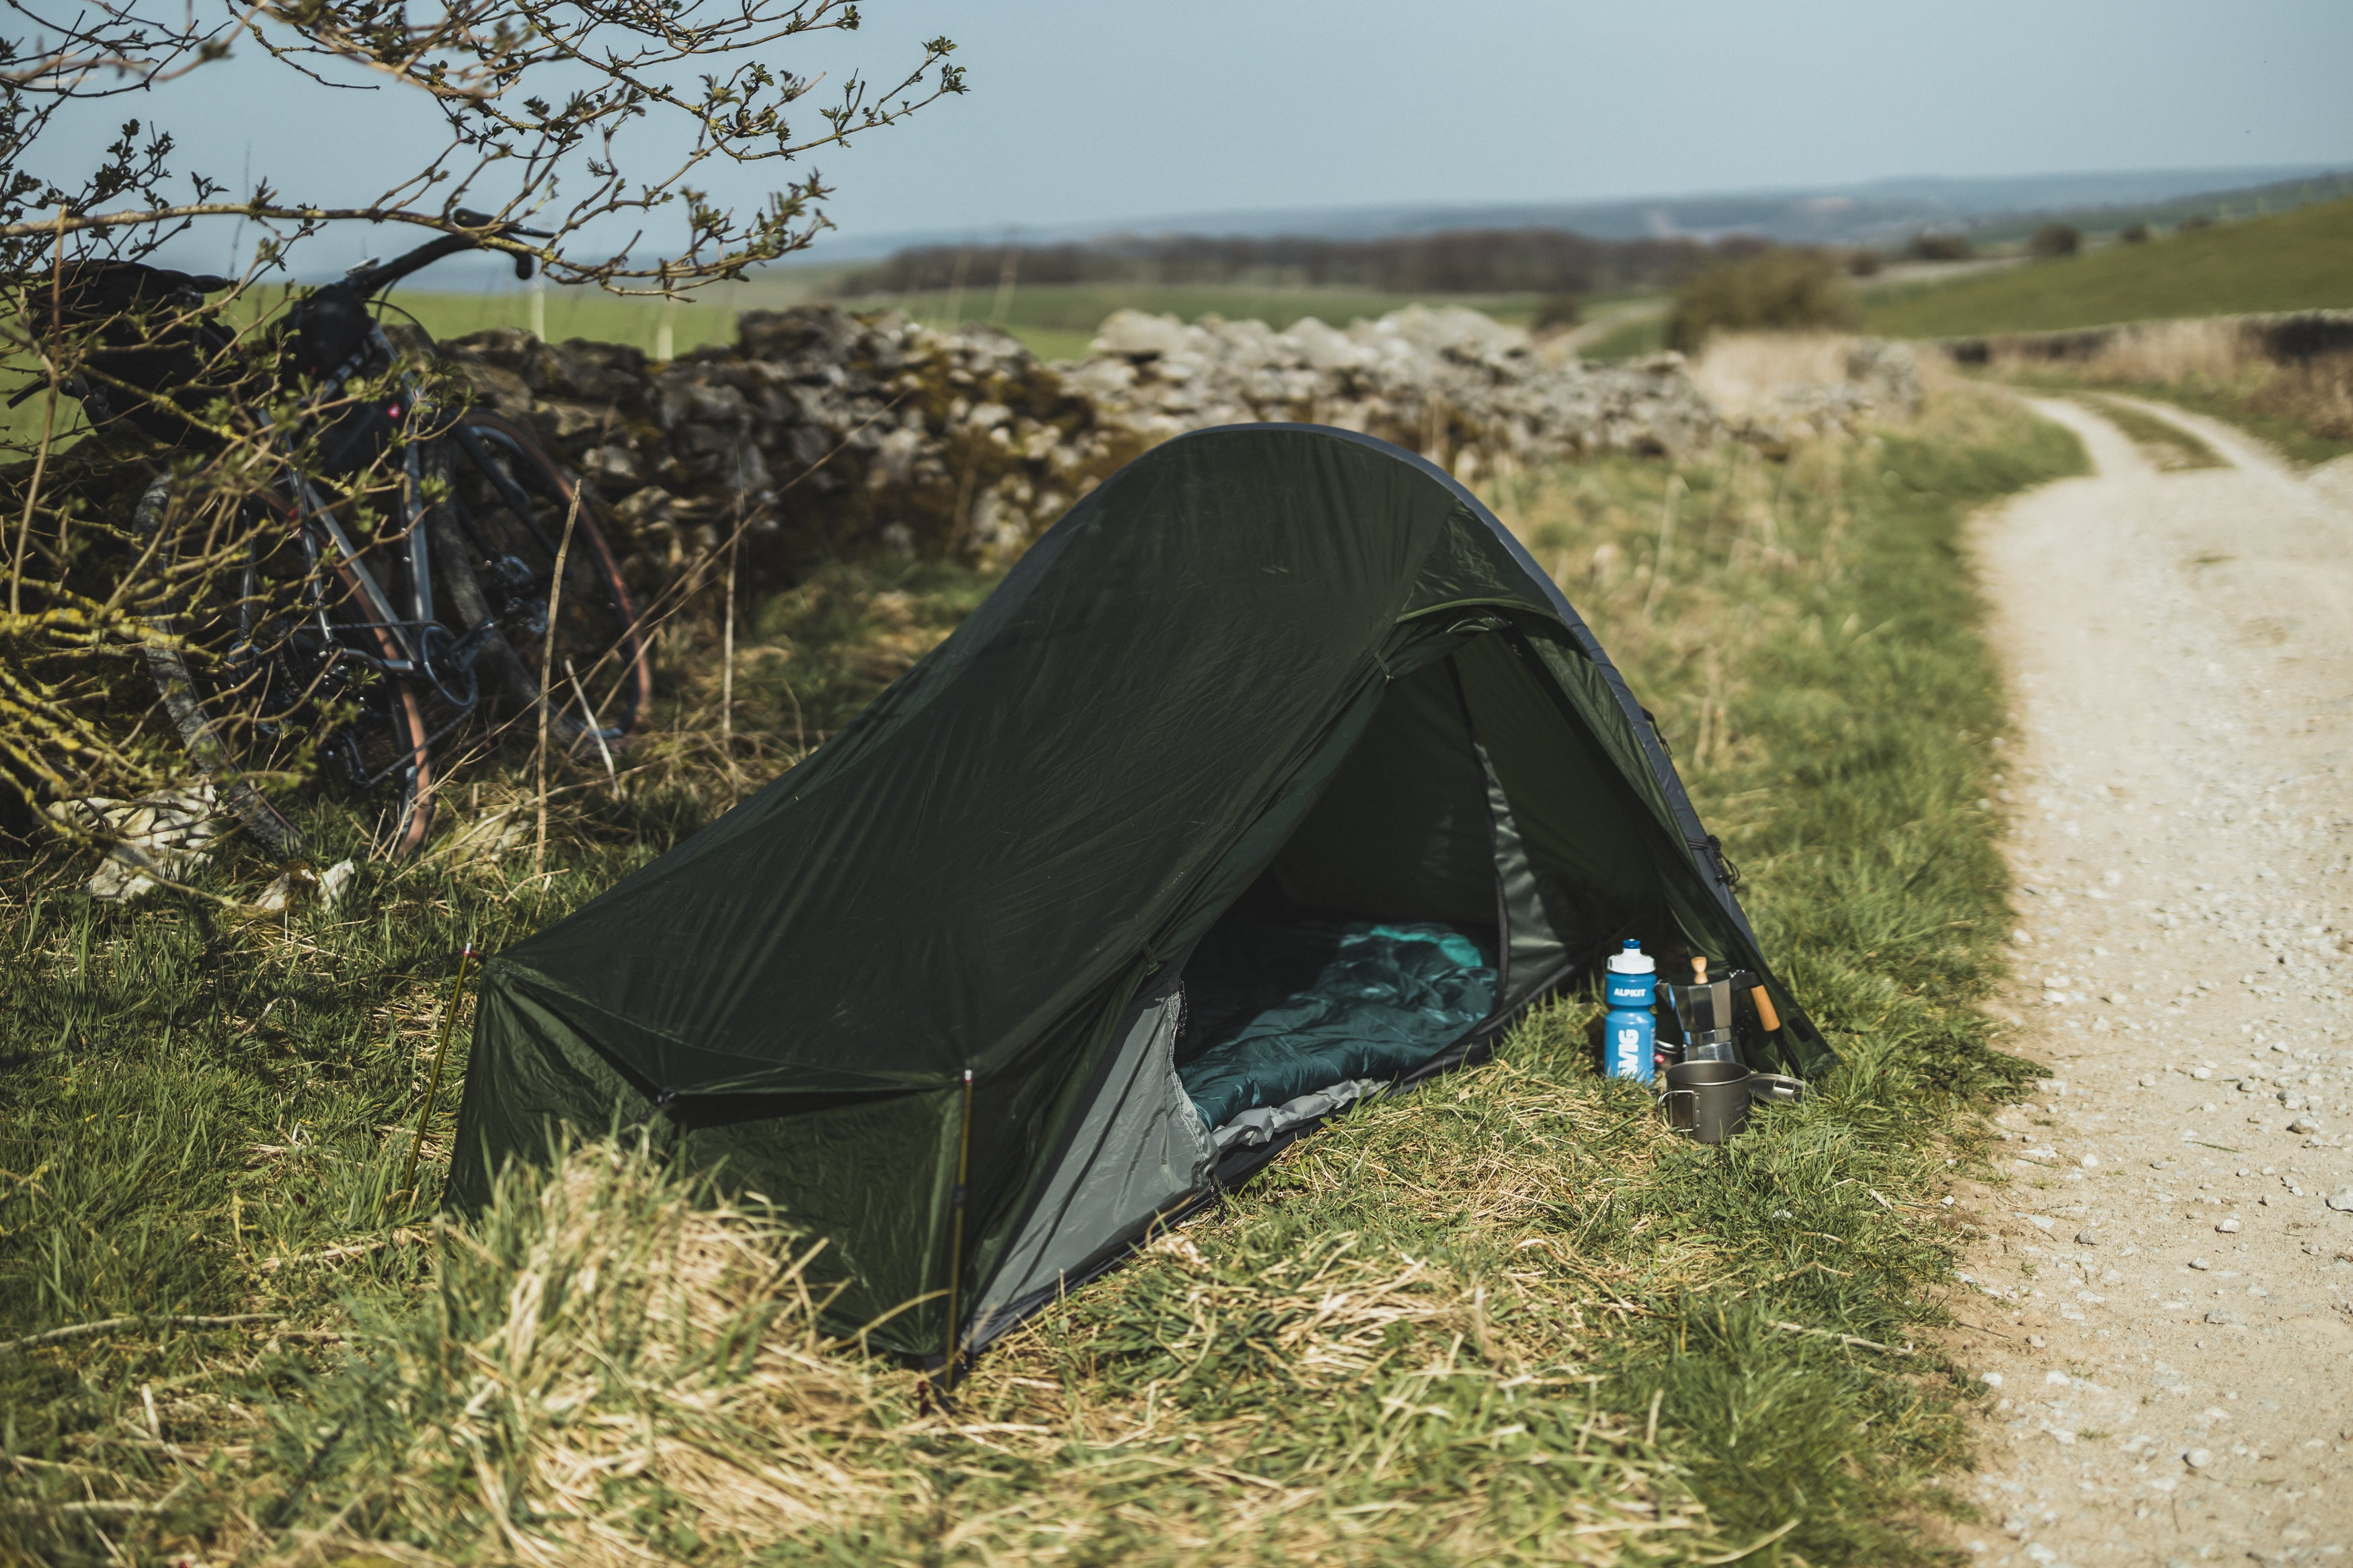 Tent by a road